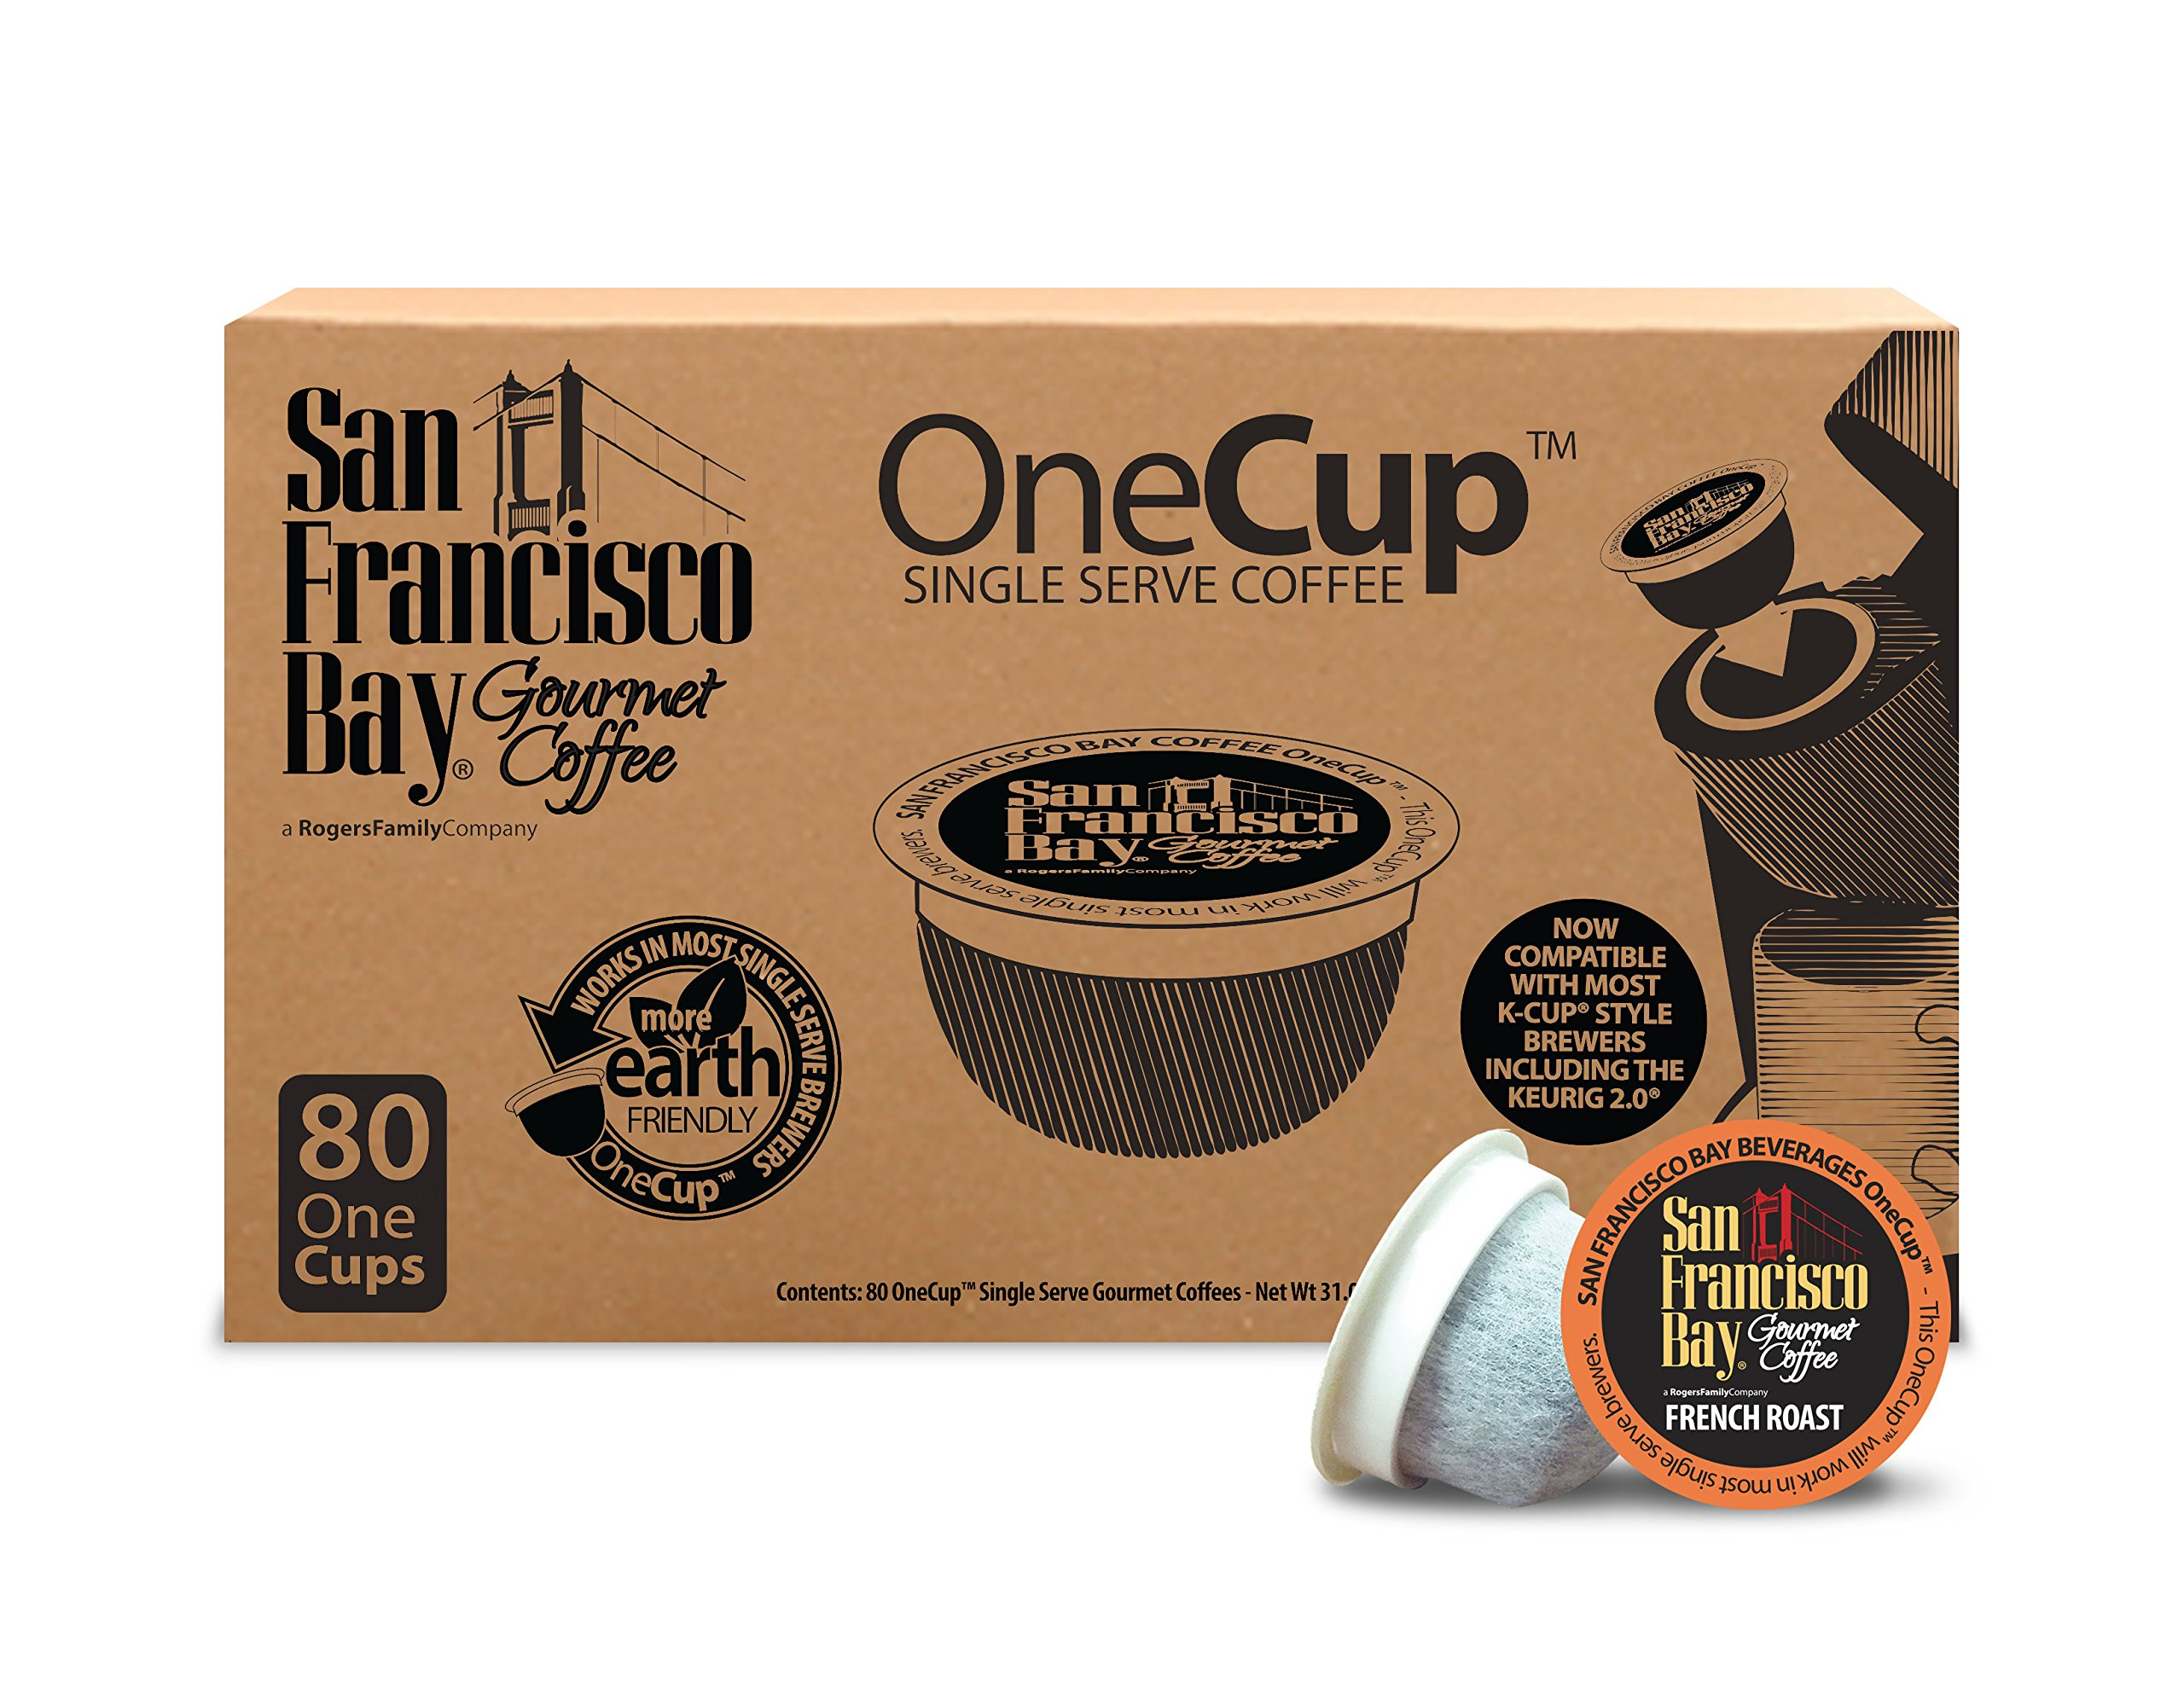 San Francisco Bay OneCup, French Roast, 80 Count- Single Serve Coffee, Compatible with Keurig K-cup Brewers by SAN FRANCISCO BAY